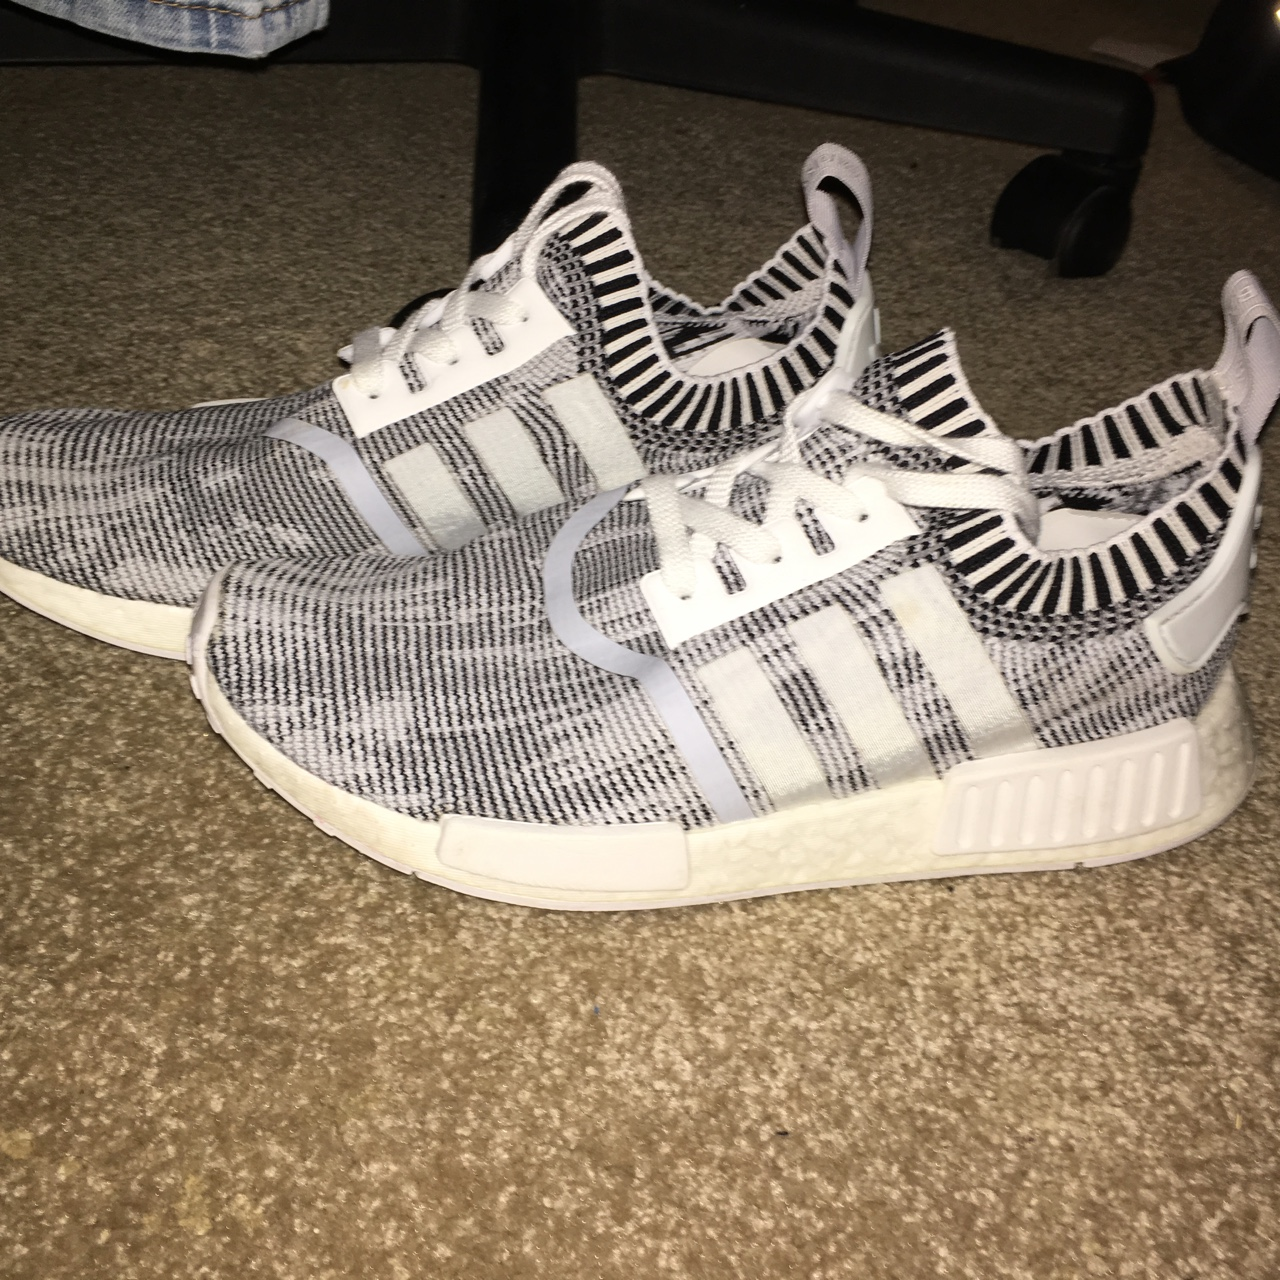 sports shoes 2a5ec c109d Adidas NMD R1 PK 'Oreo' Colorway, size US Men's 8.5 ...